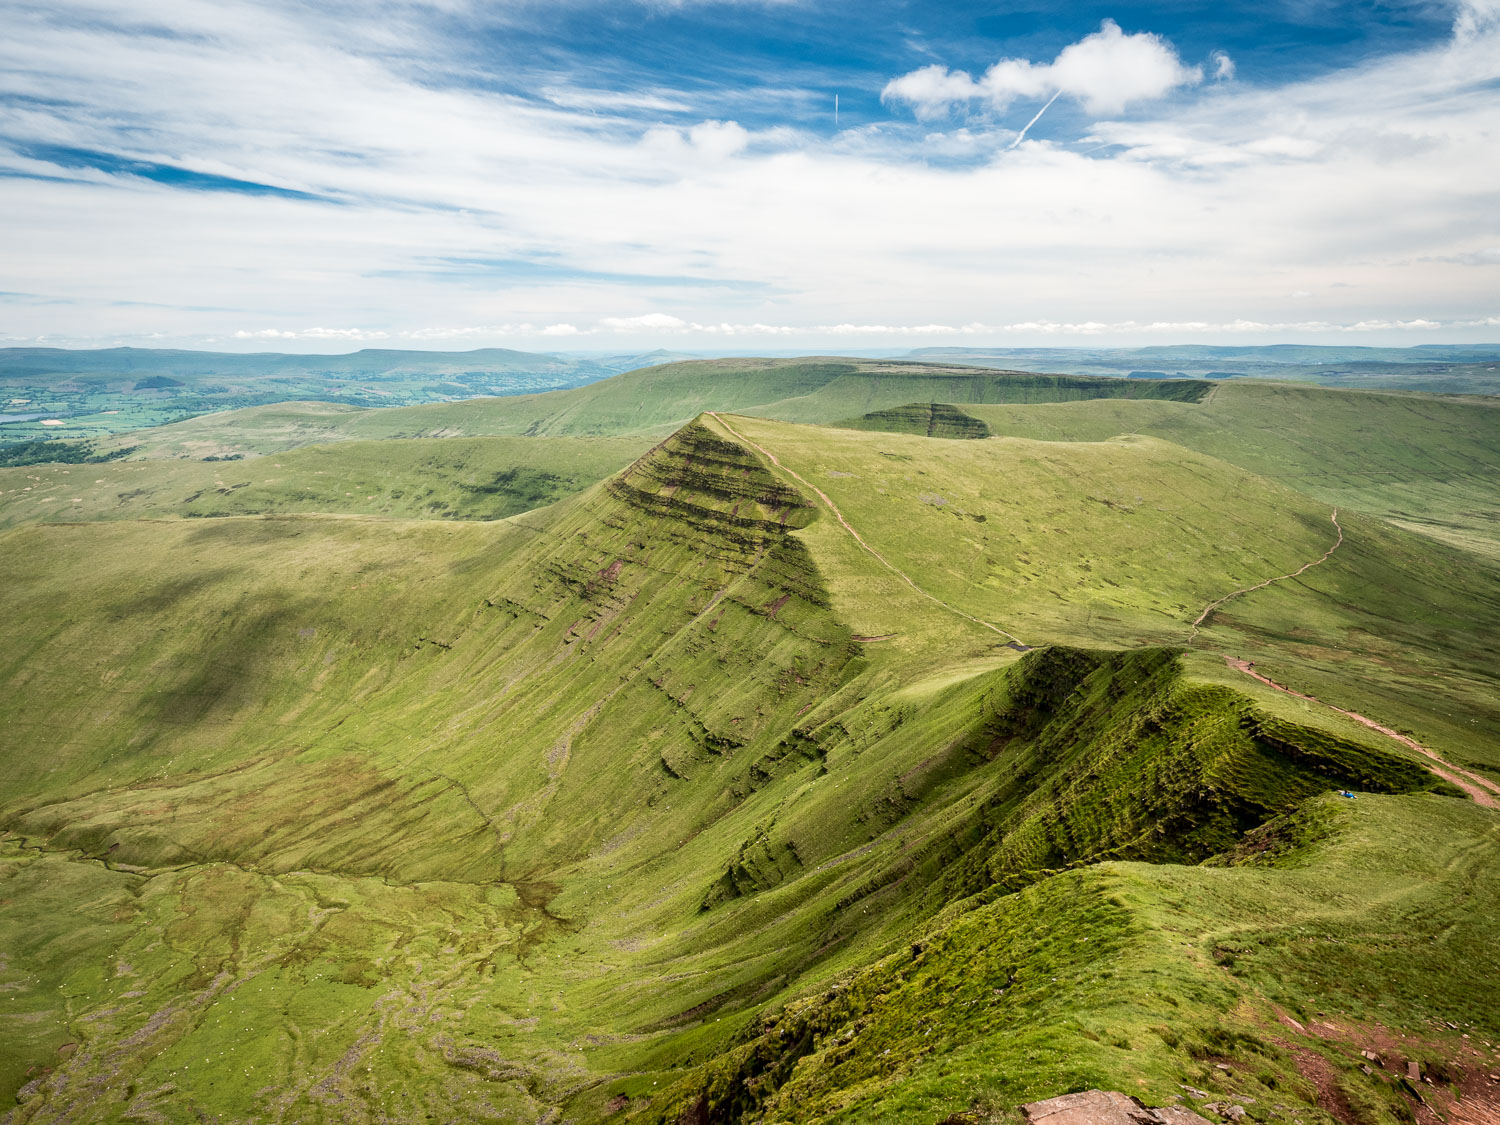 A Landscape Photograph Showing Cribyn, Taken From Pen Y Fan, In The Brecon Beacons National Park, Wales.